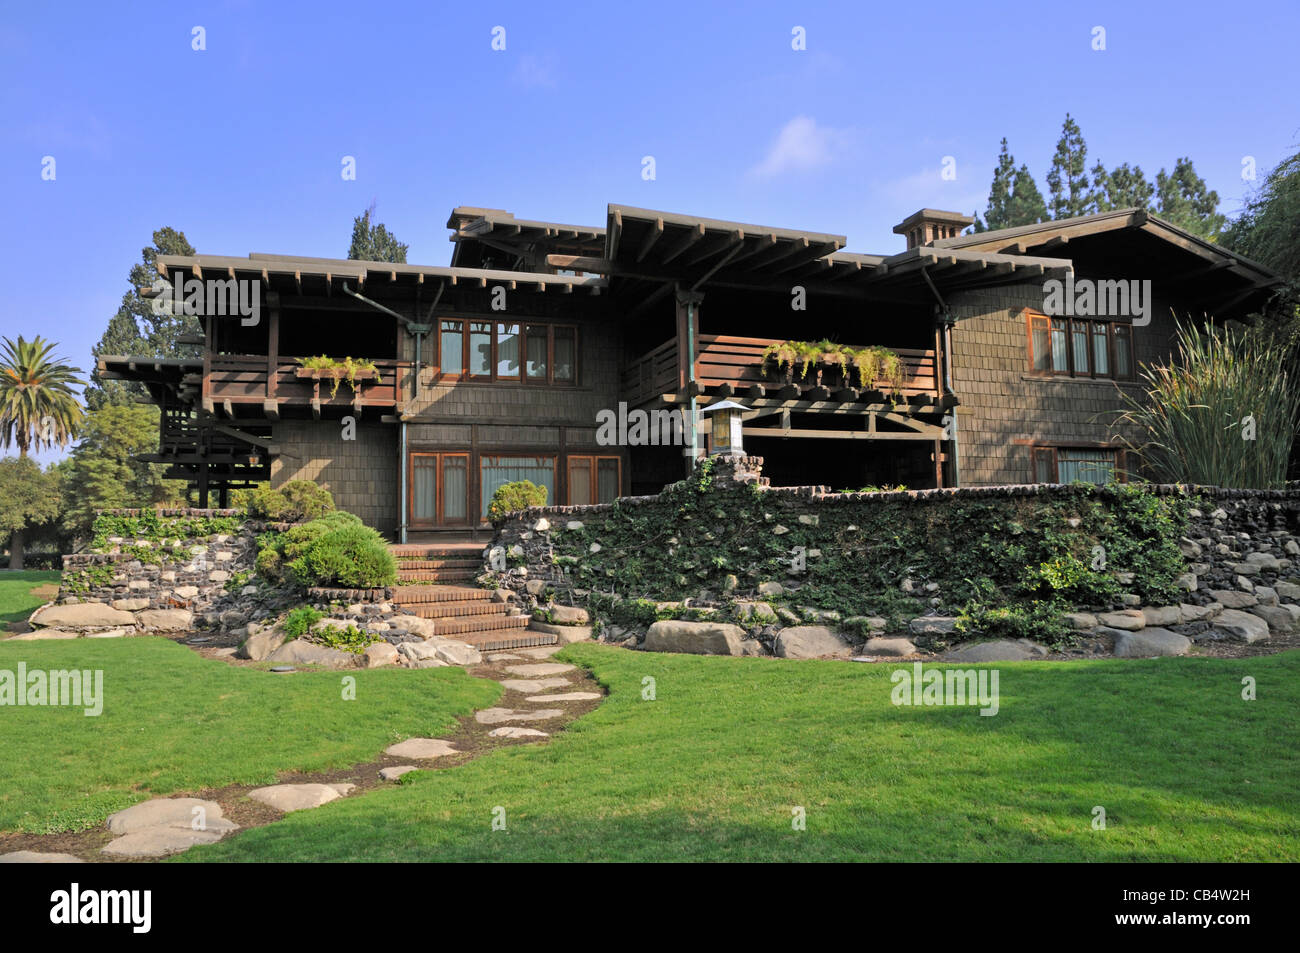 The Gamble House, a historic house in Pasadena, California. - Stock Image